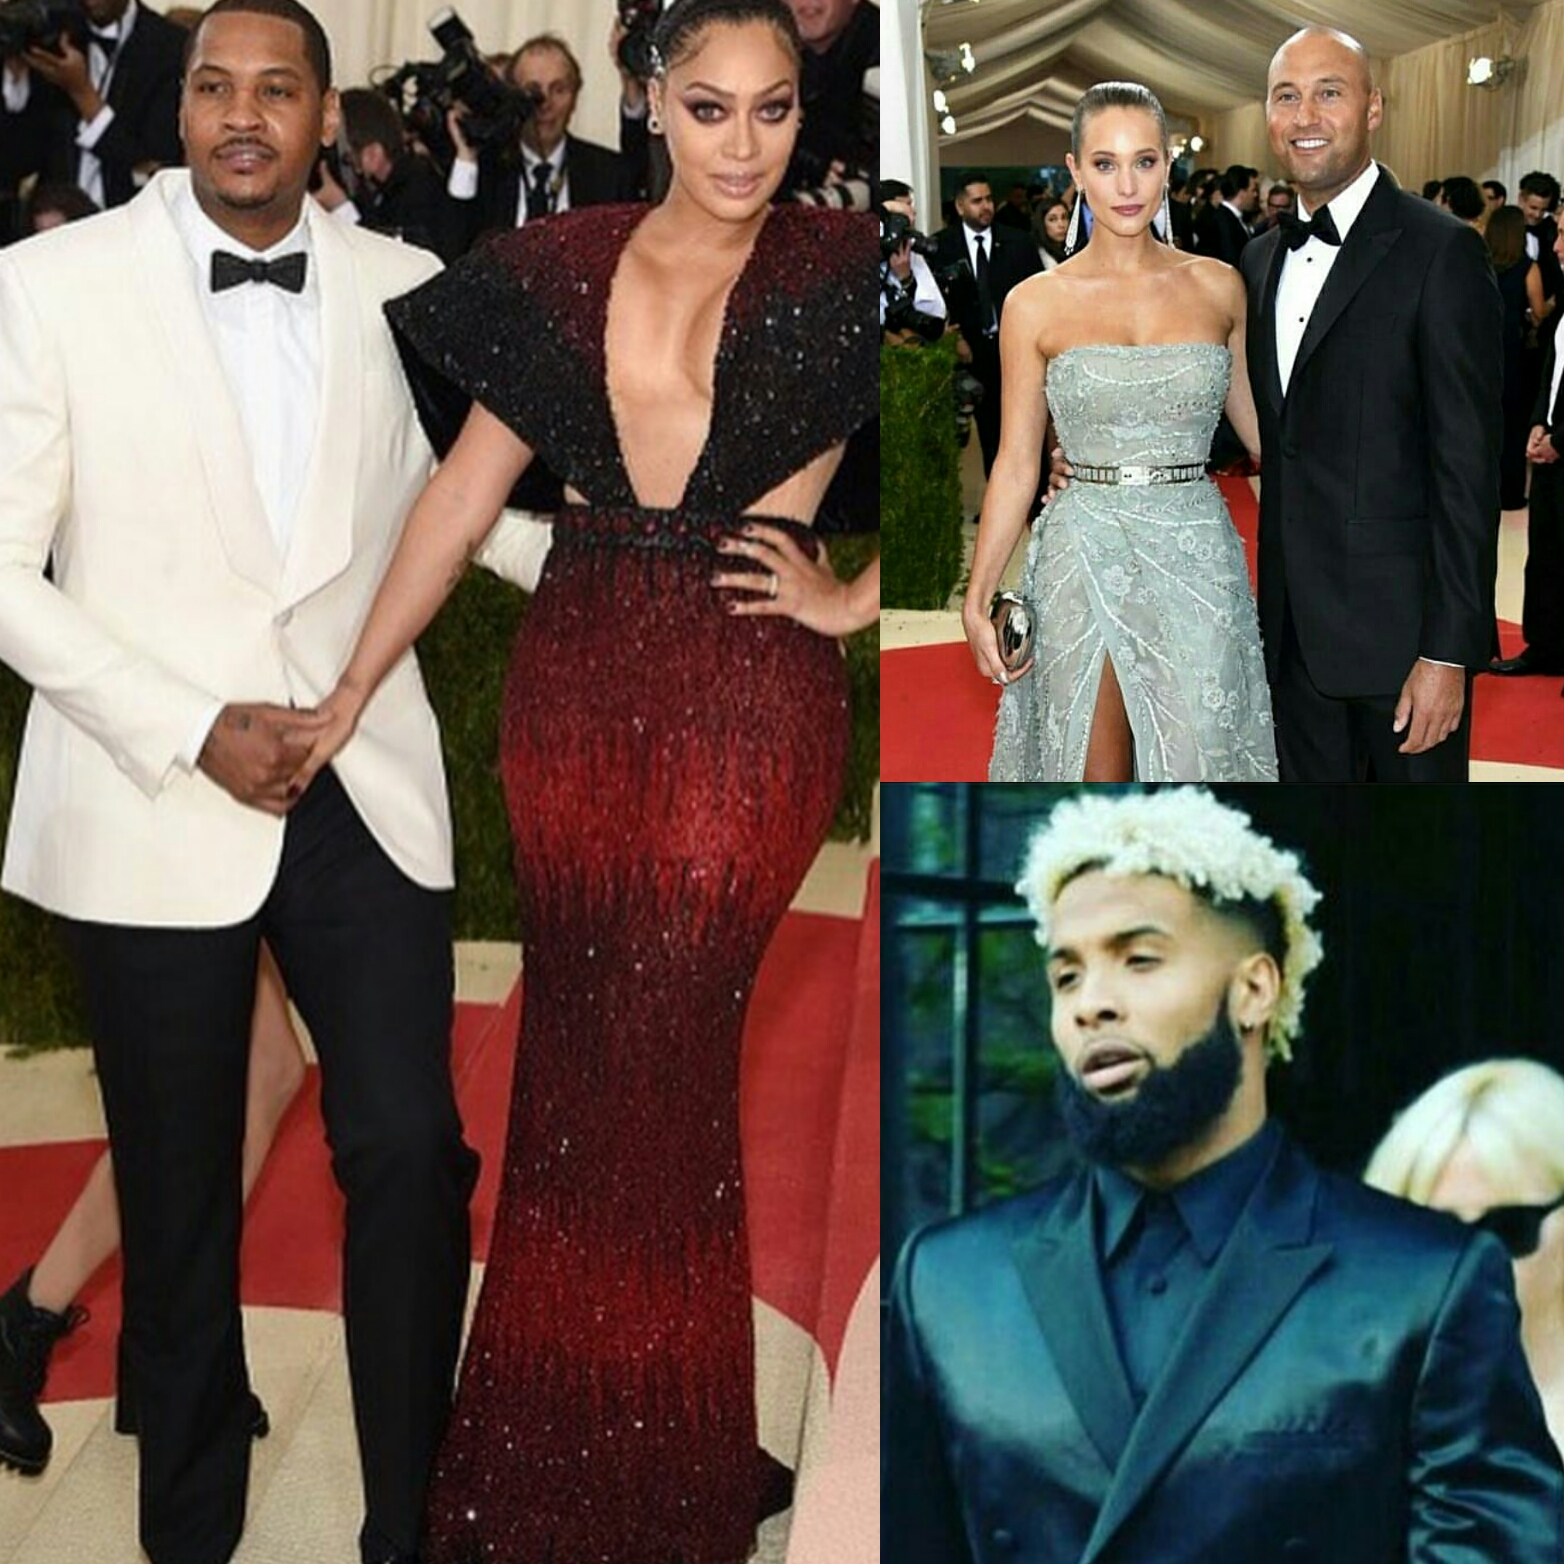 2016 Met Gala STYLE: Athletes Carmelo Anthony, Odell Beckham Jr, And Derek Jeter.